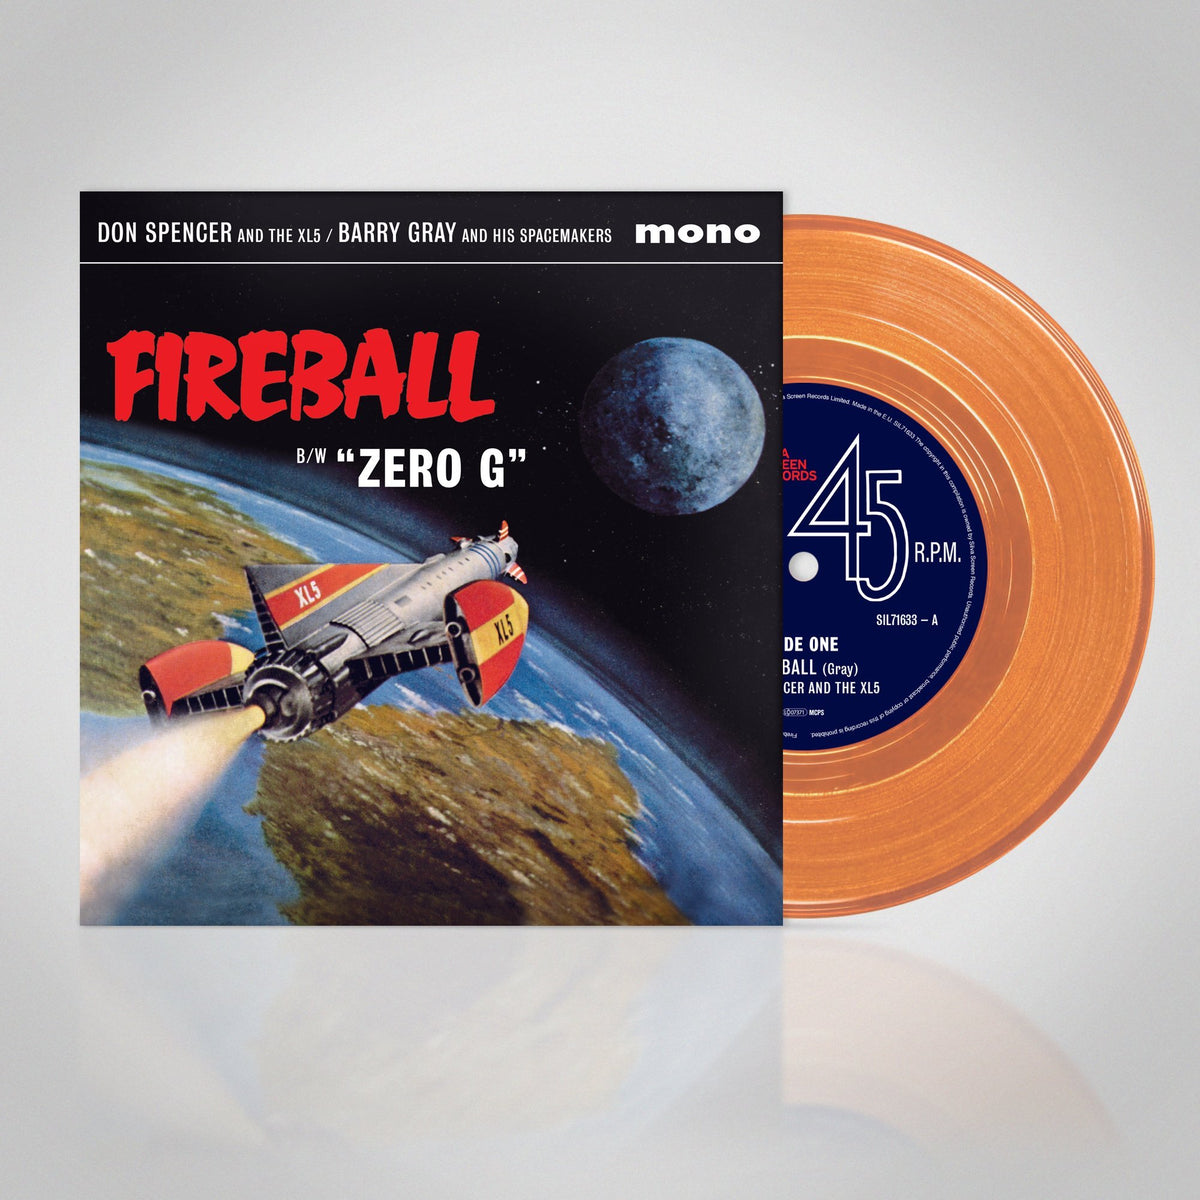 "Fireball XL5: Original Soundtrack: Barry Gray Feat. Don Spencer (Coloured Vinyl 7"" Single) - The Gerry Anderson Store"